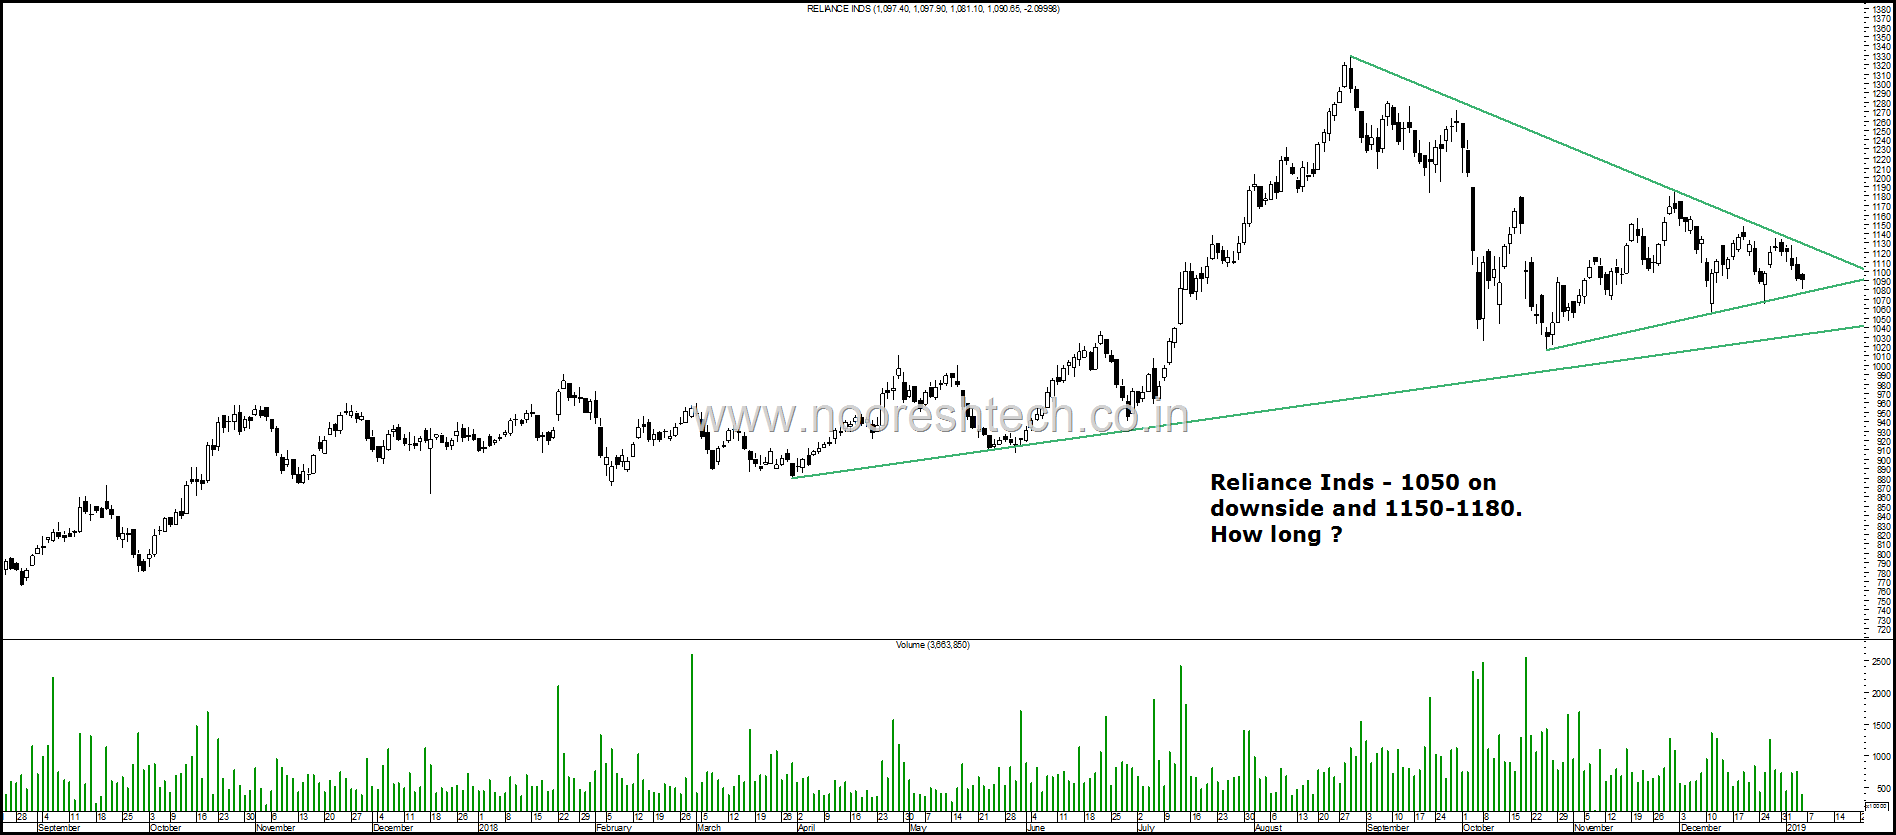 Reliance Inds Range